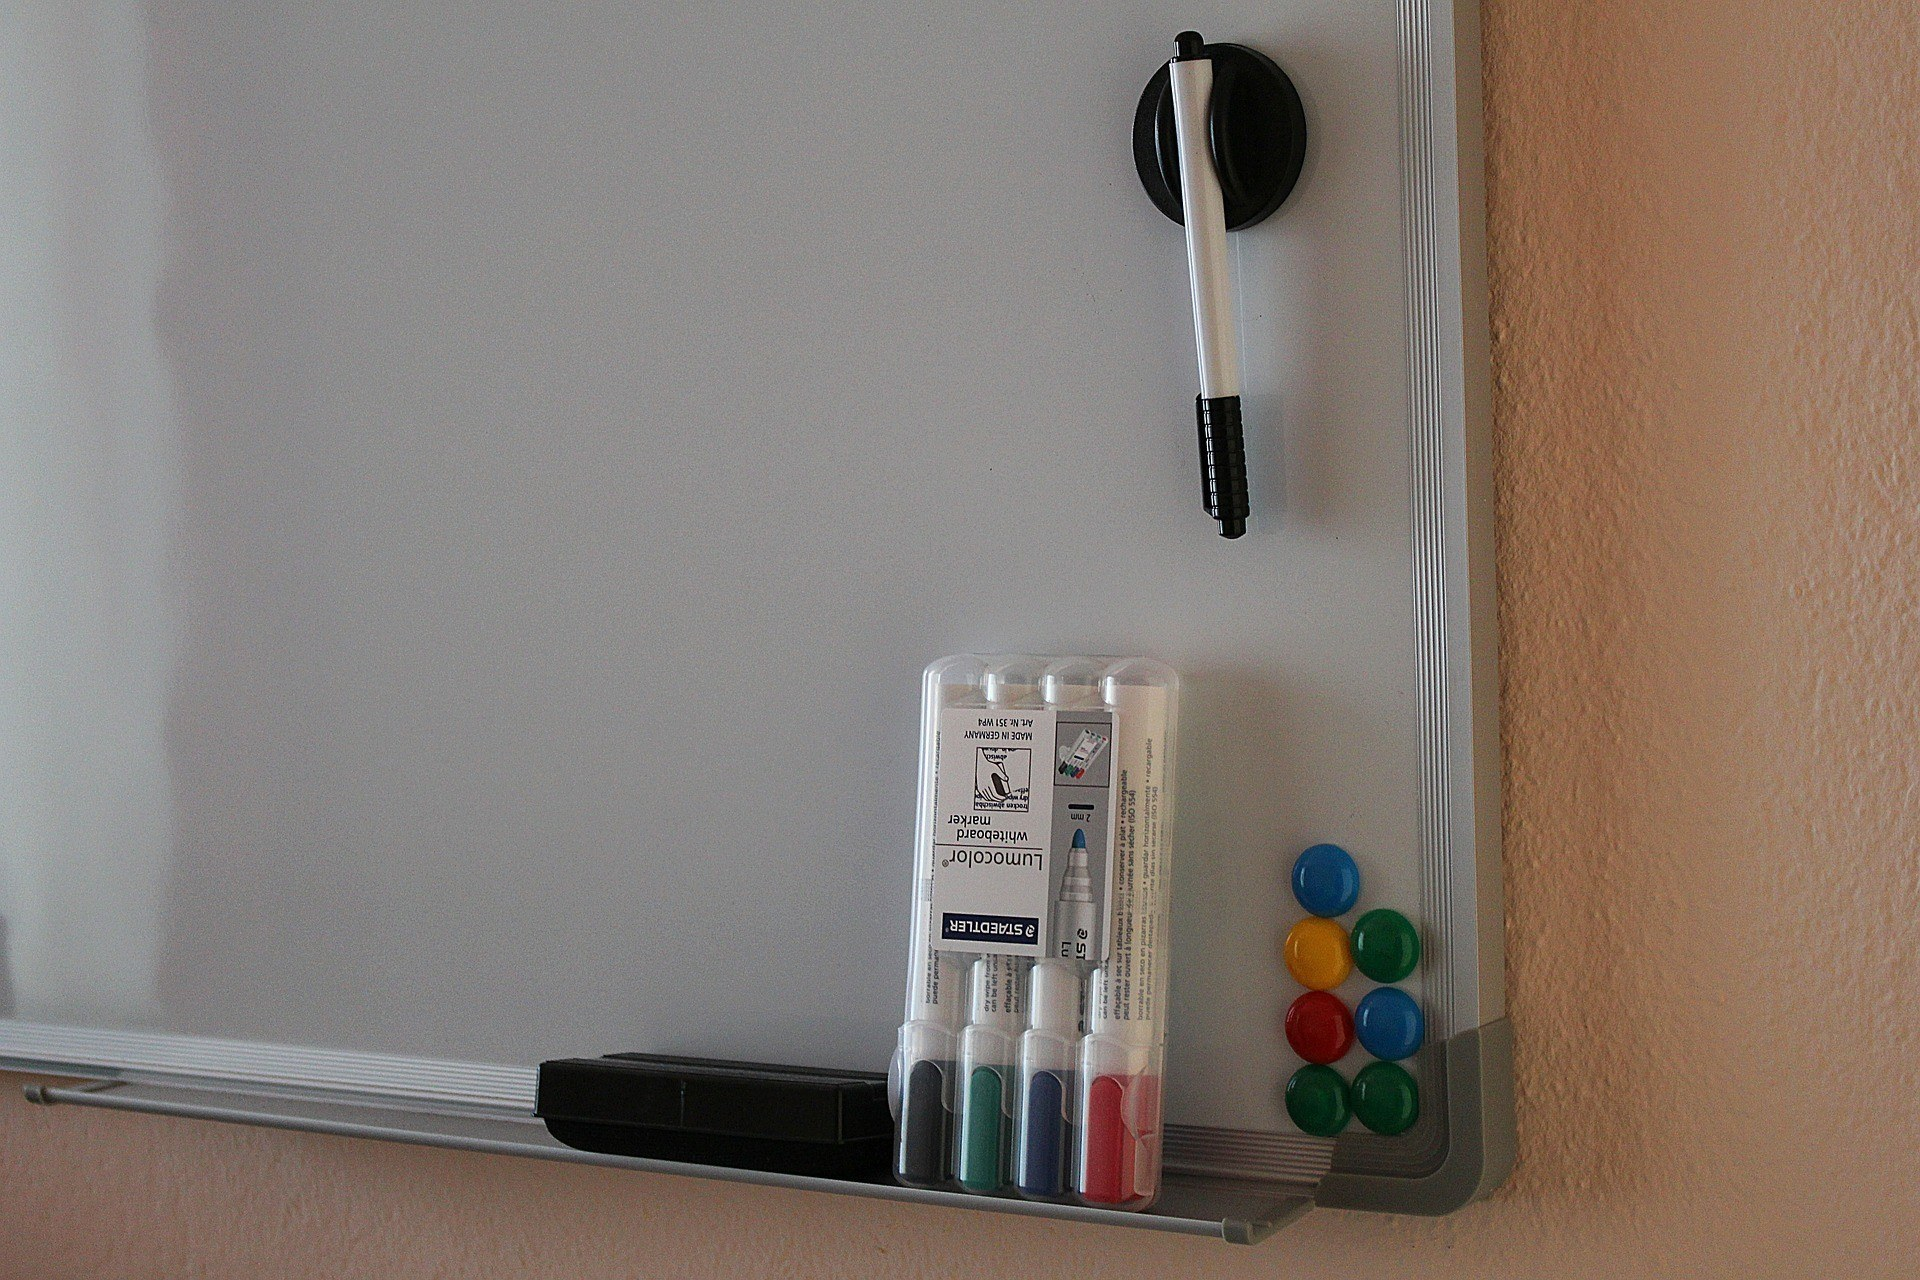 Whiteboard and markers